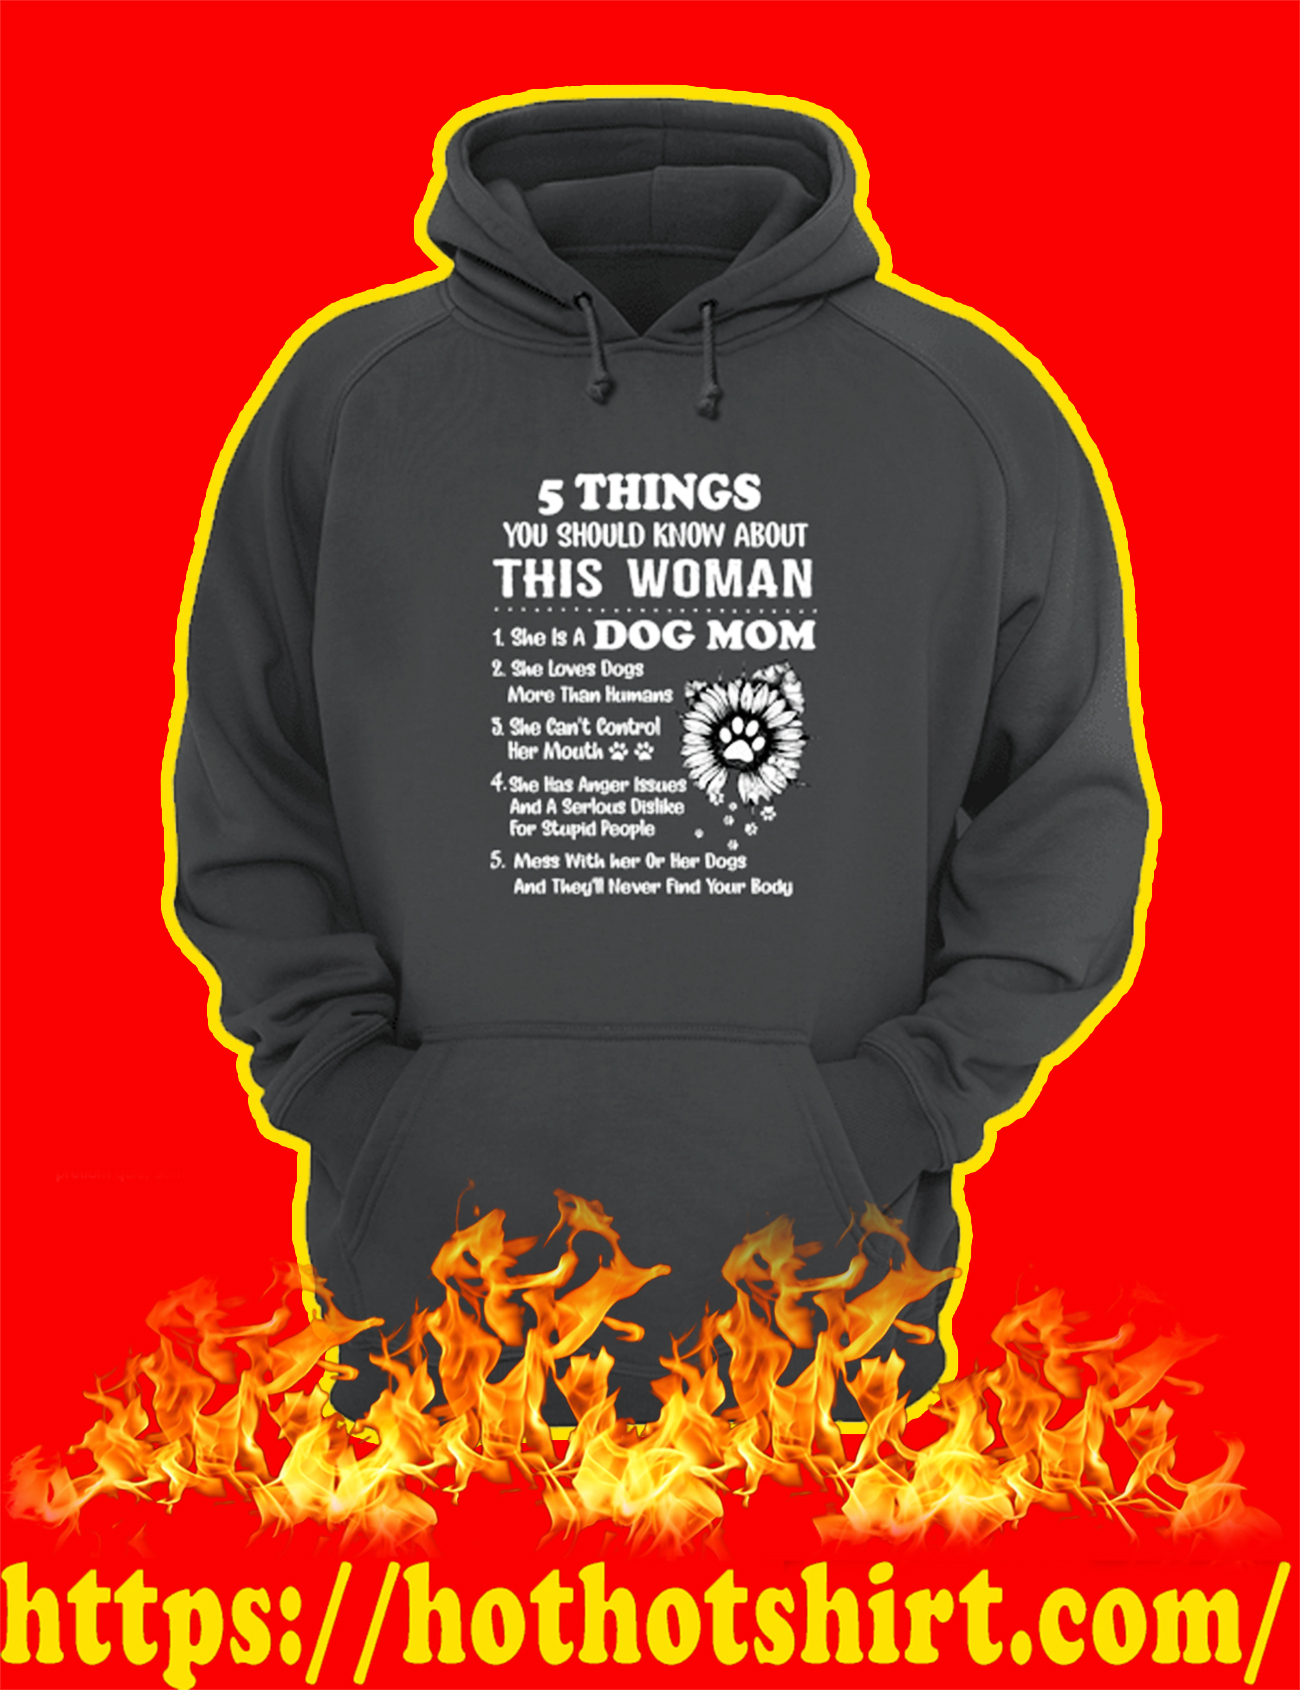 Dog Mom 5 Things You Should Know About This Woman hoodie